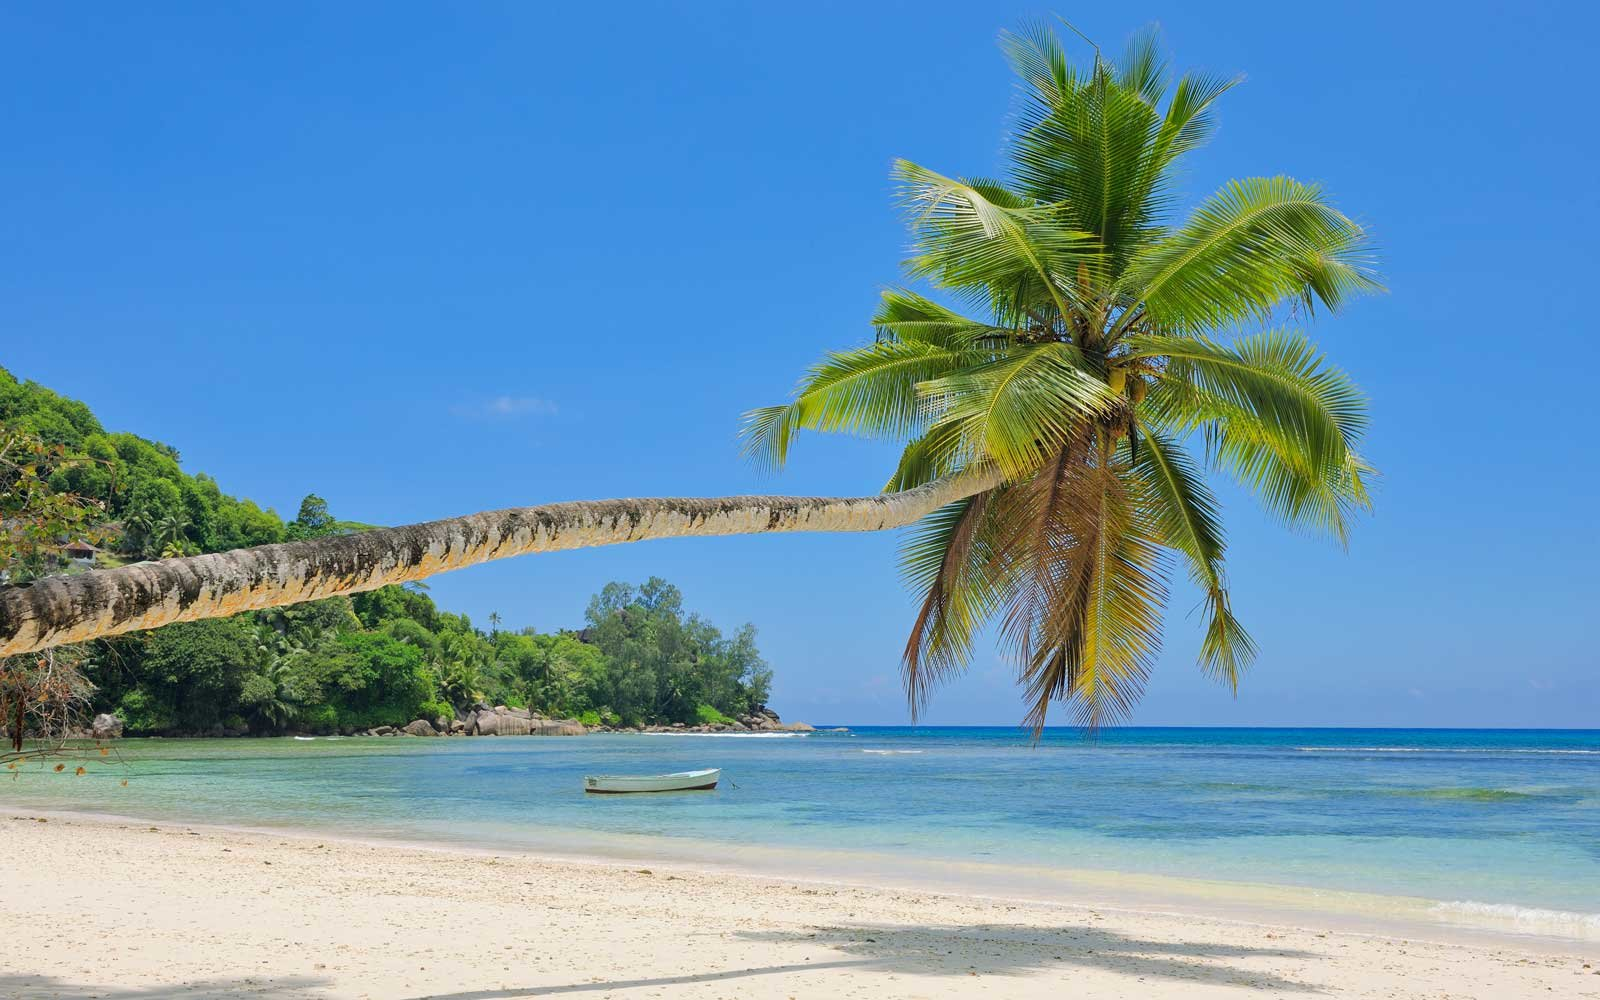 Babe Lazare, Seychelles, Palm tree overhanging at beach.